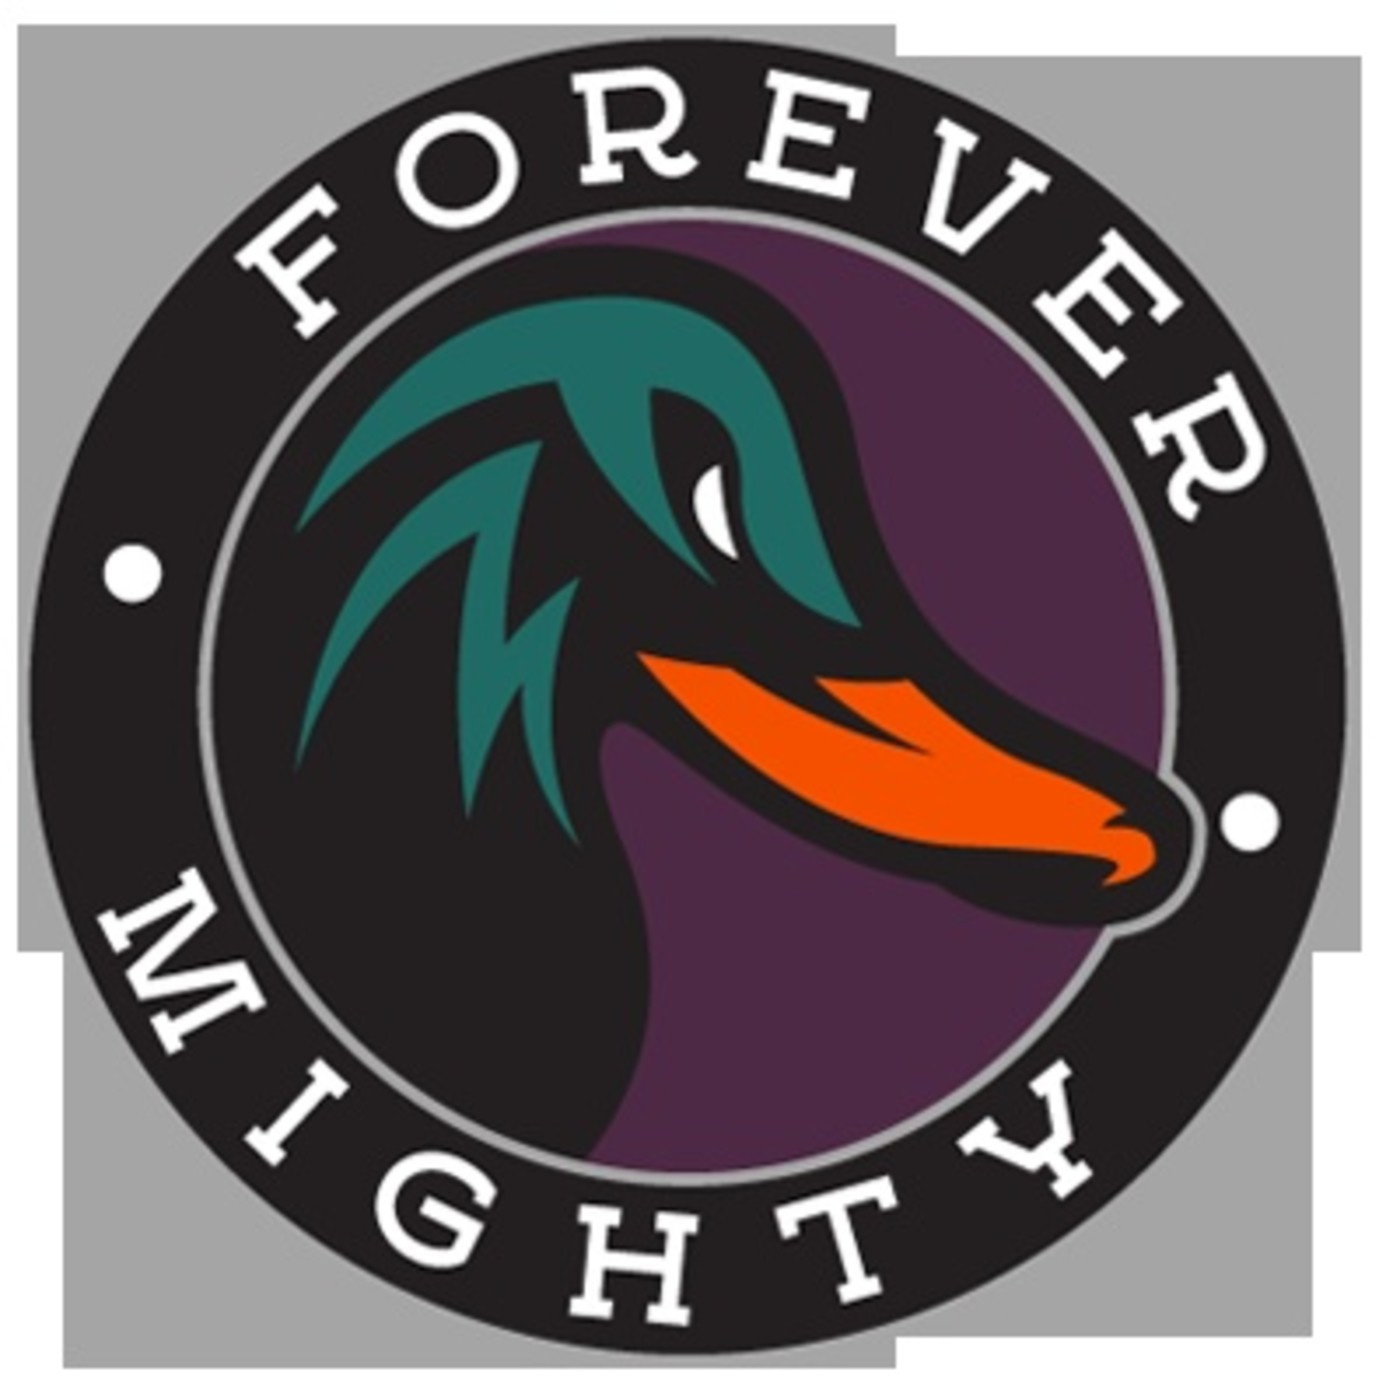 Forever Mighty Podcast - The Powerplay is Good - Dec. 15, 2019